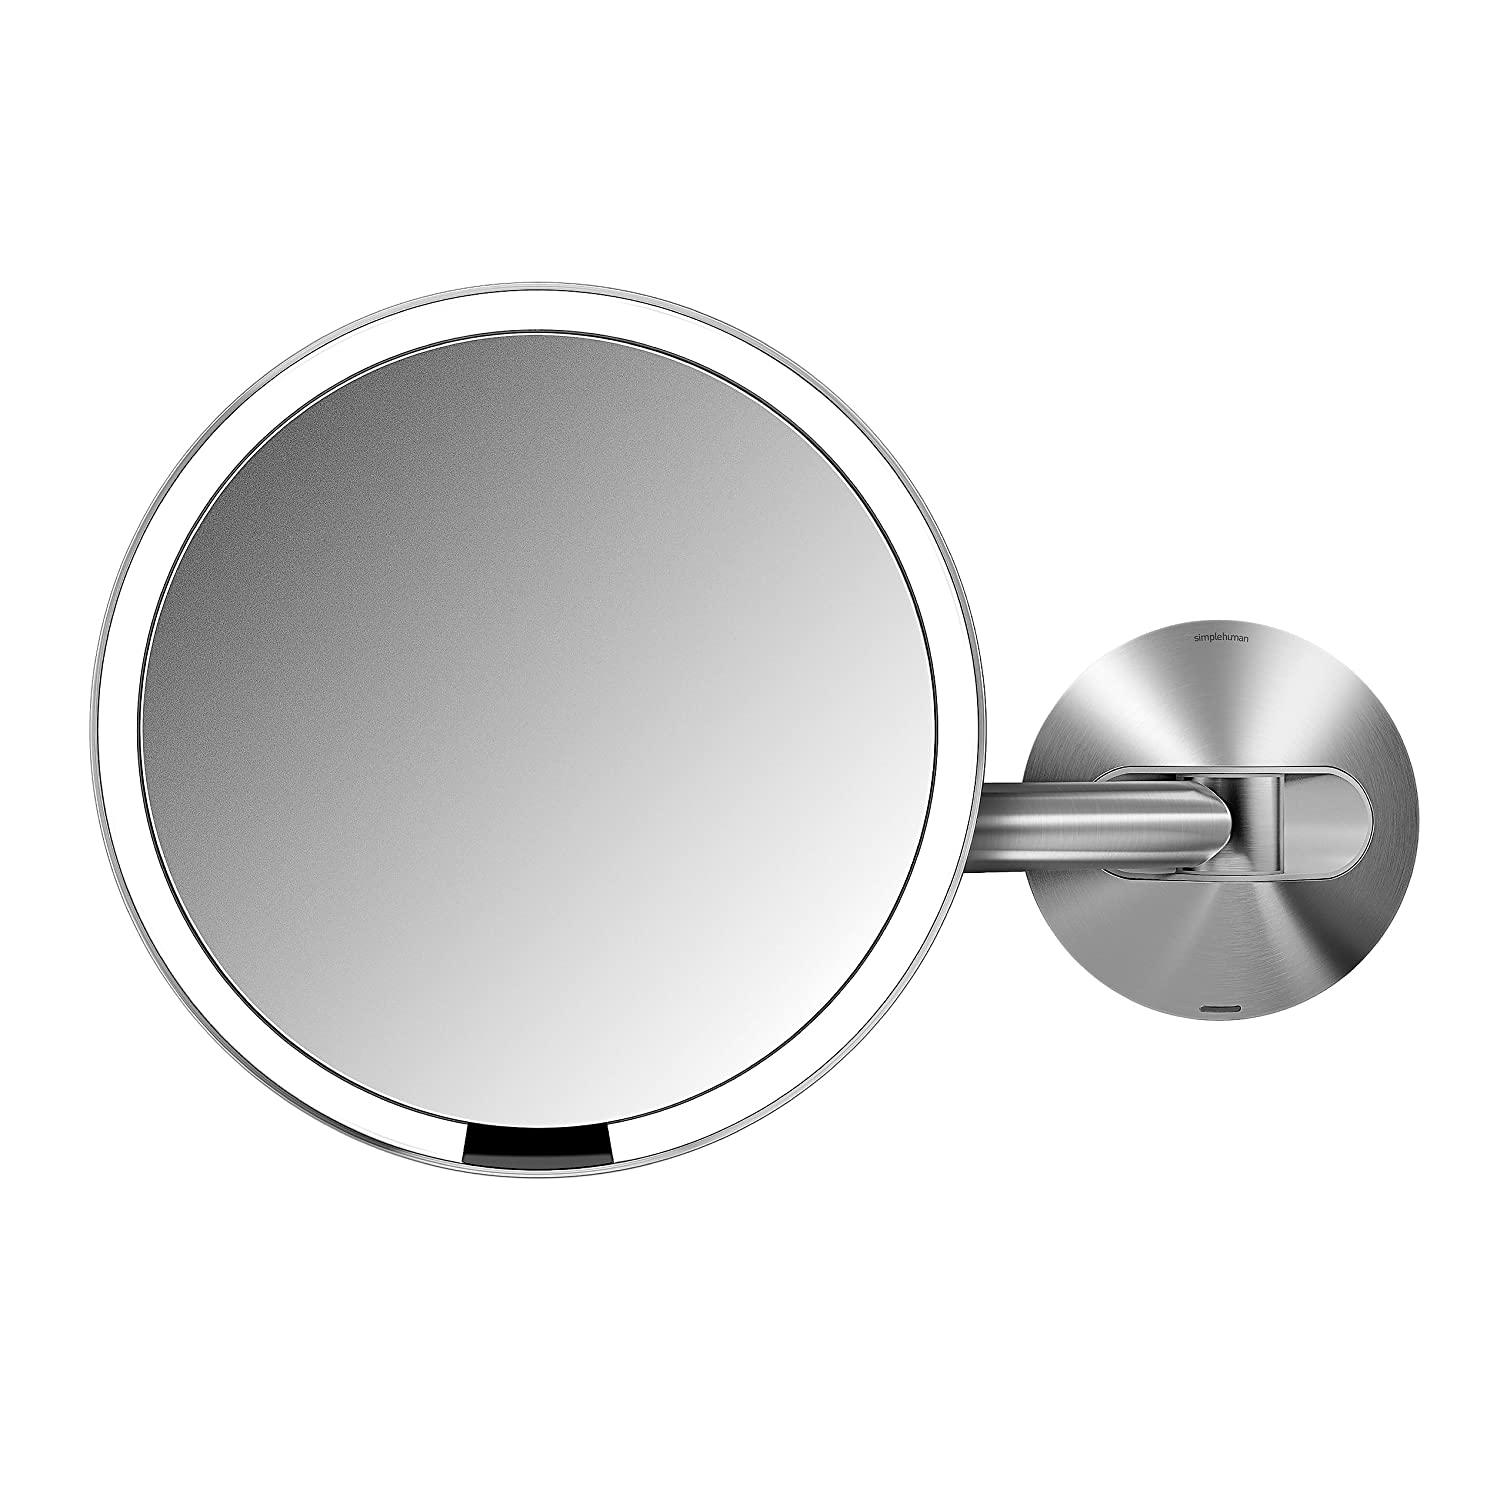 Wall mounted bathroom mirror - Amazon Com Simplehuman 8 Inch Wall Mount Sensor Mirror Lighted Makeup Mirror Rechargeable 5x Magnification Home Kitchen